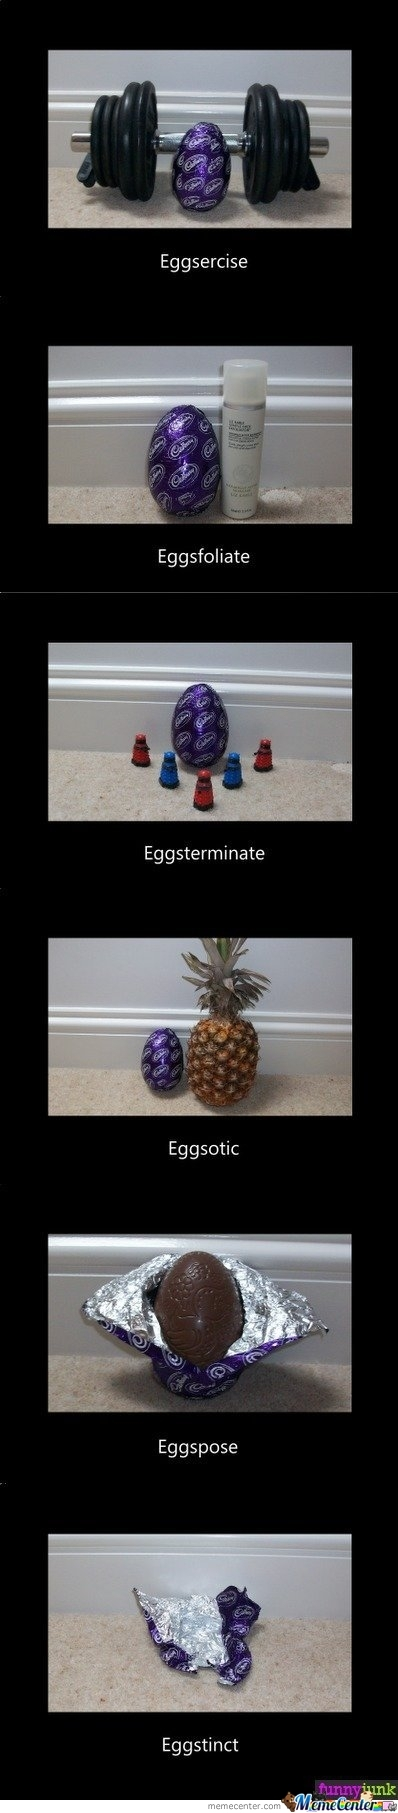 Happy Easter Memecenter.